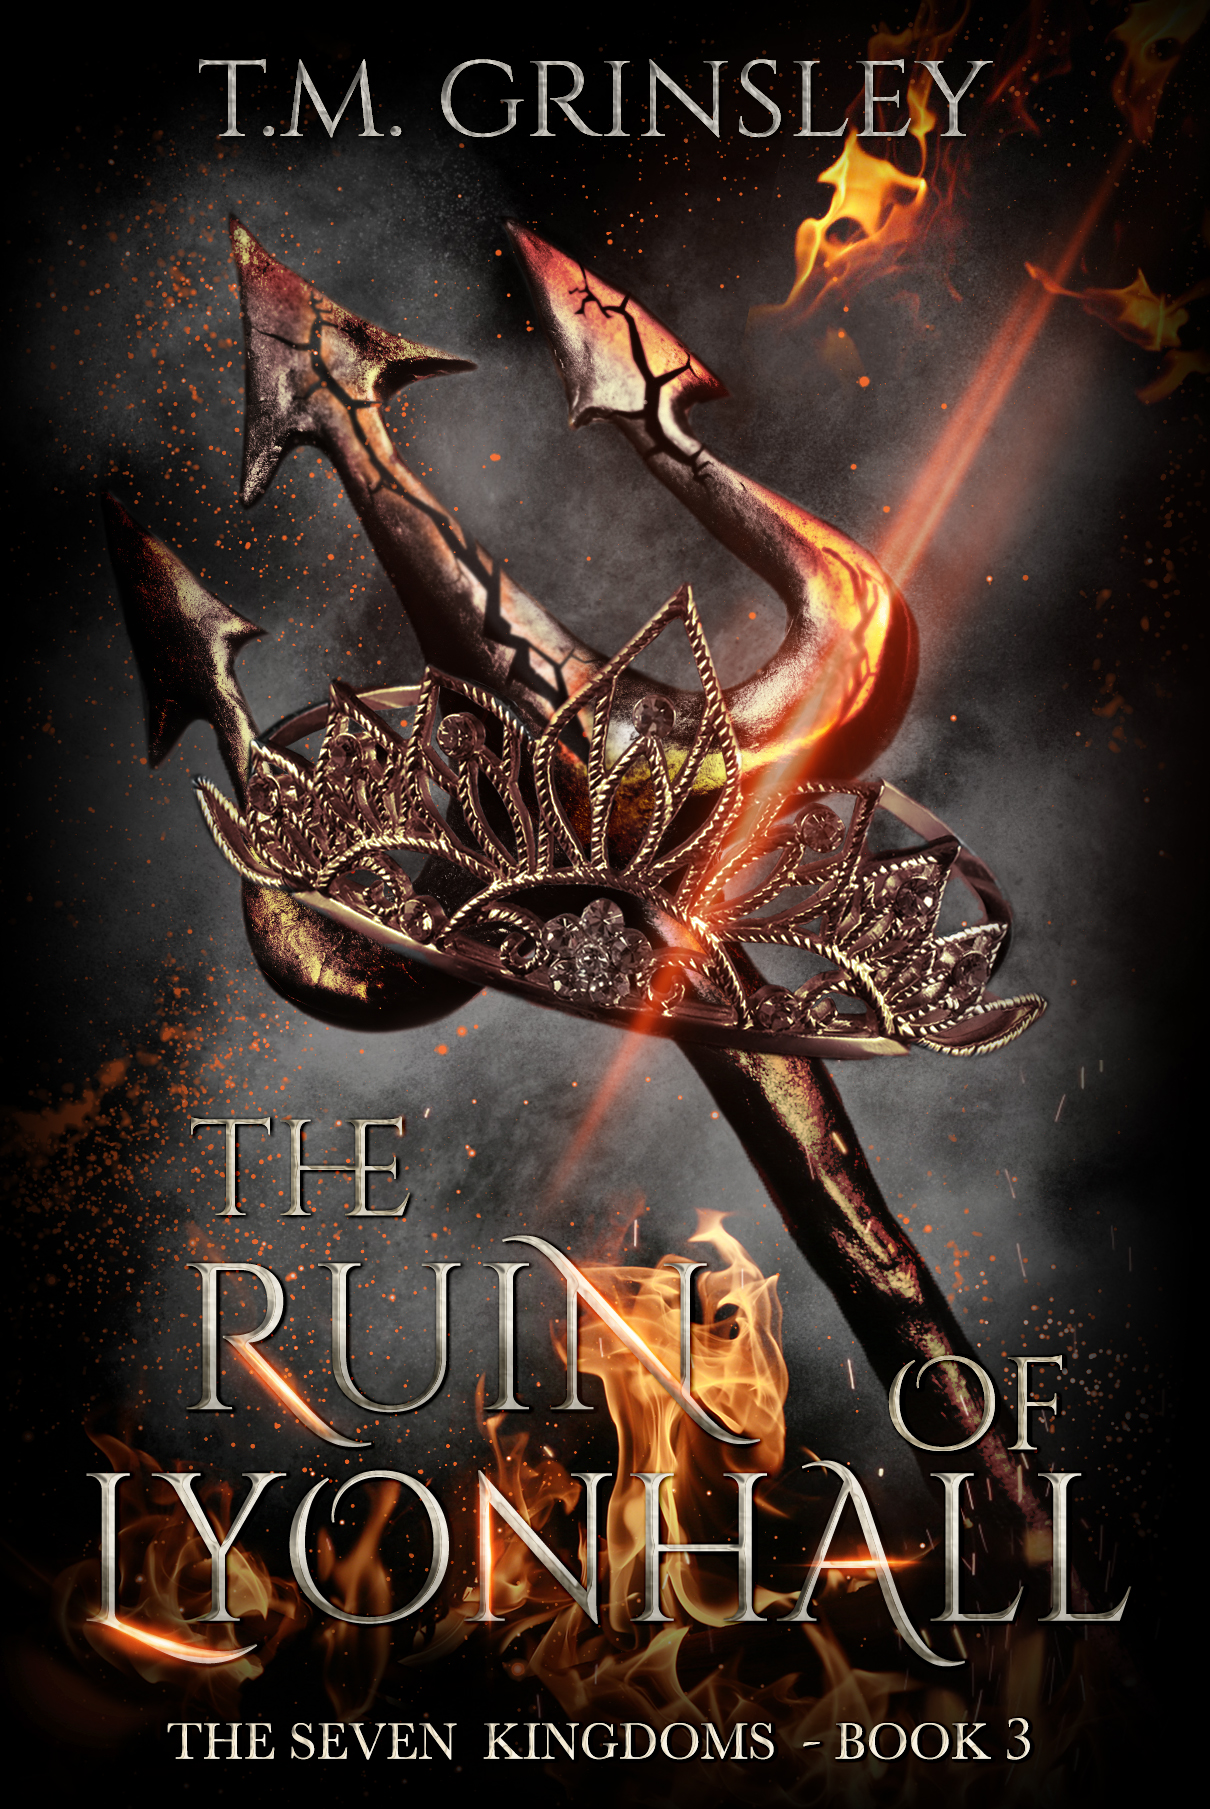 3.1. THE RUIN OF LYONHALL- EBOOK COVER